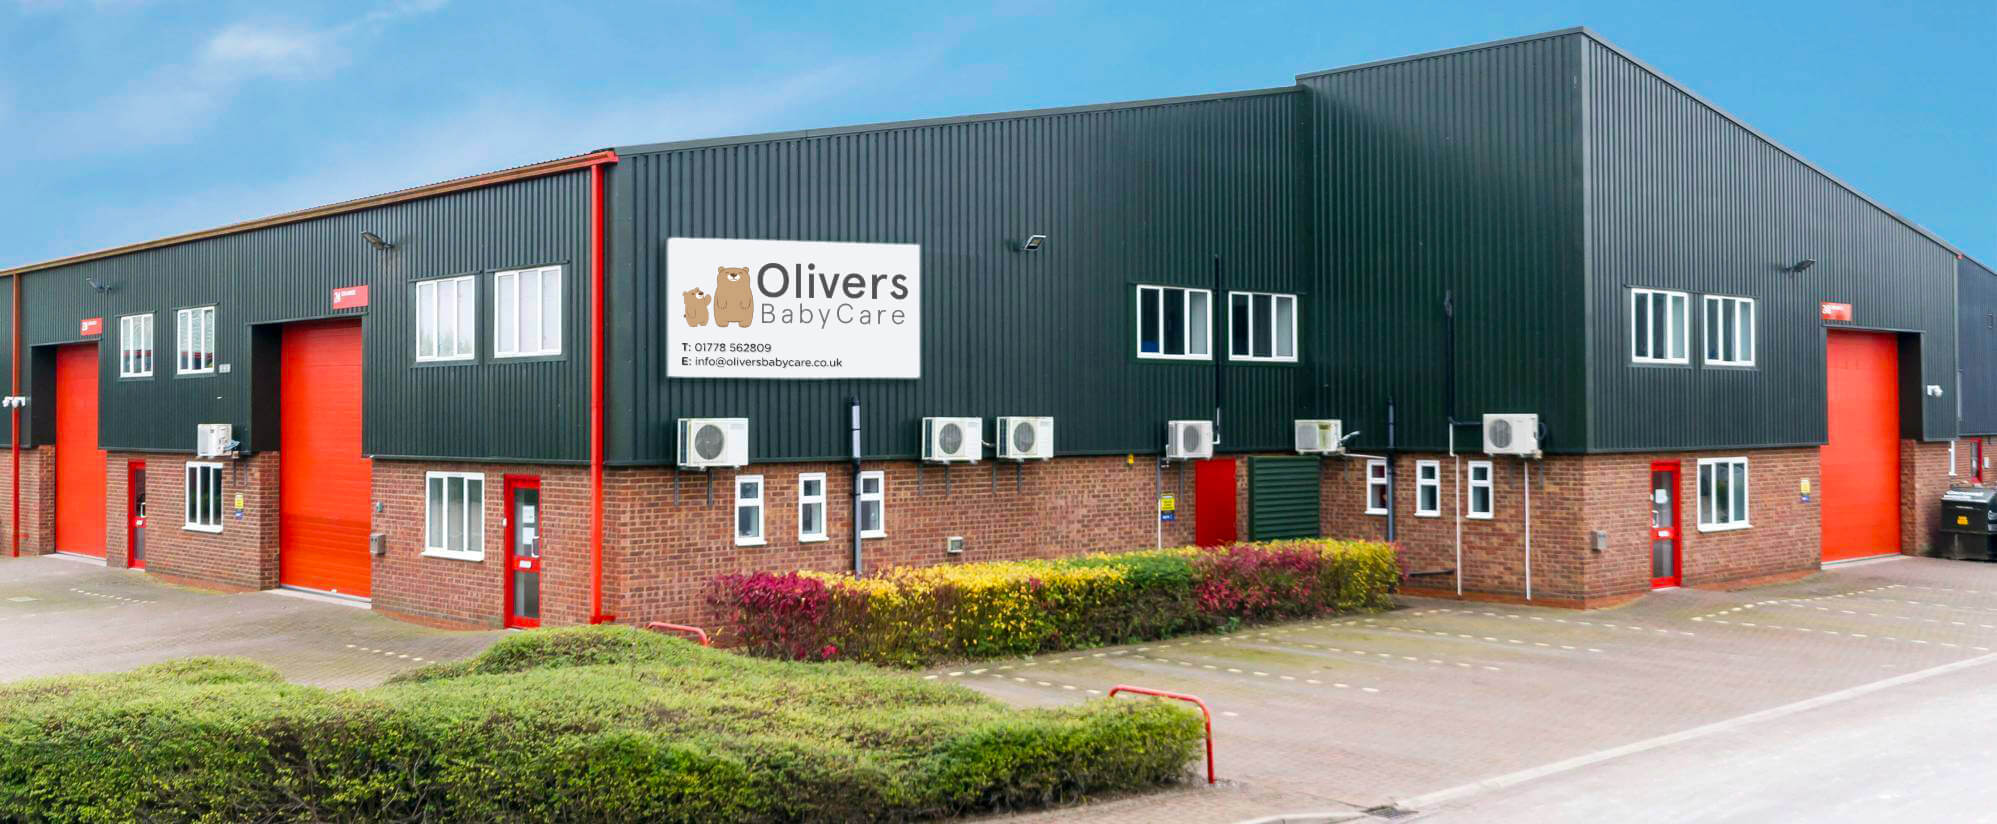 Olivers BabyCare Office